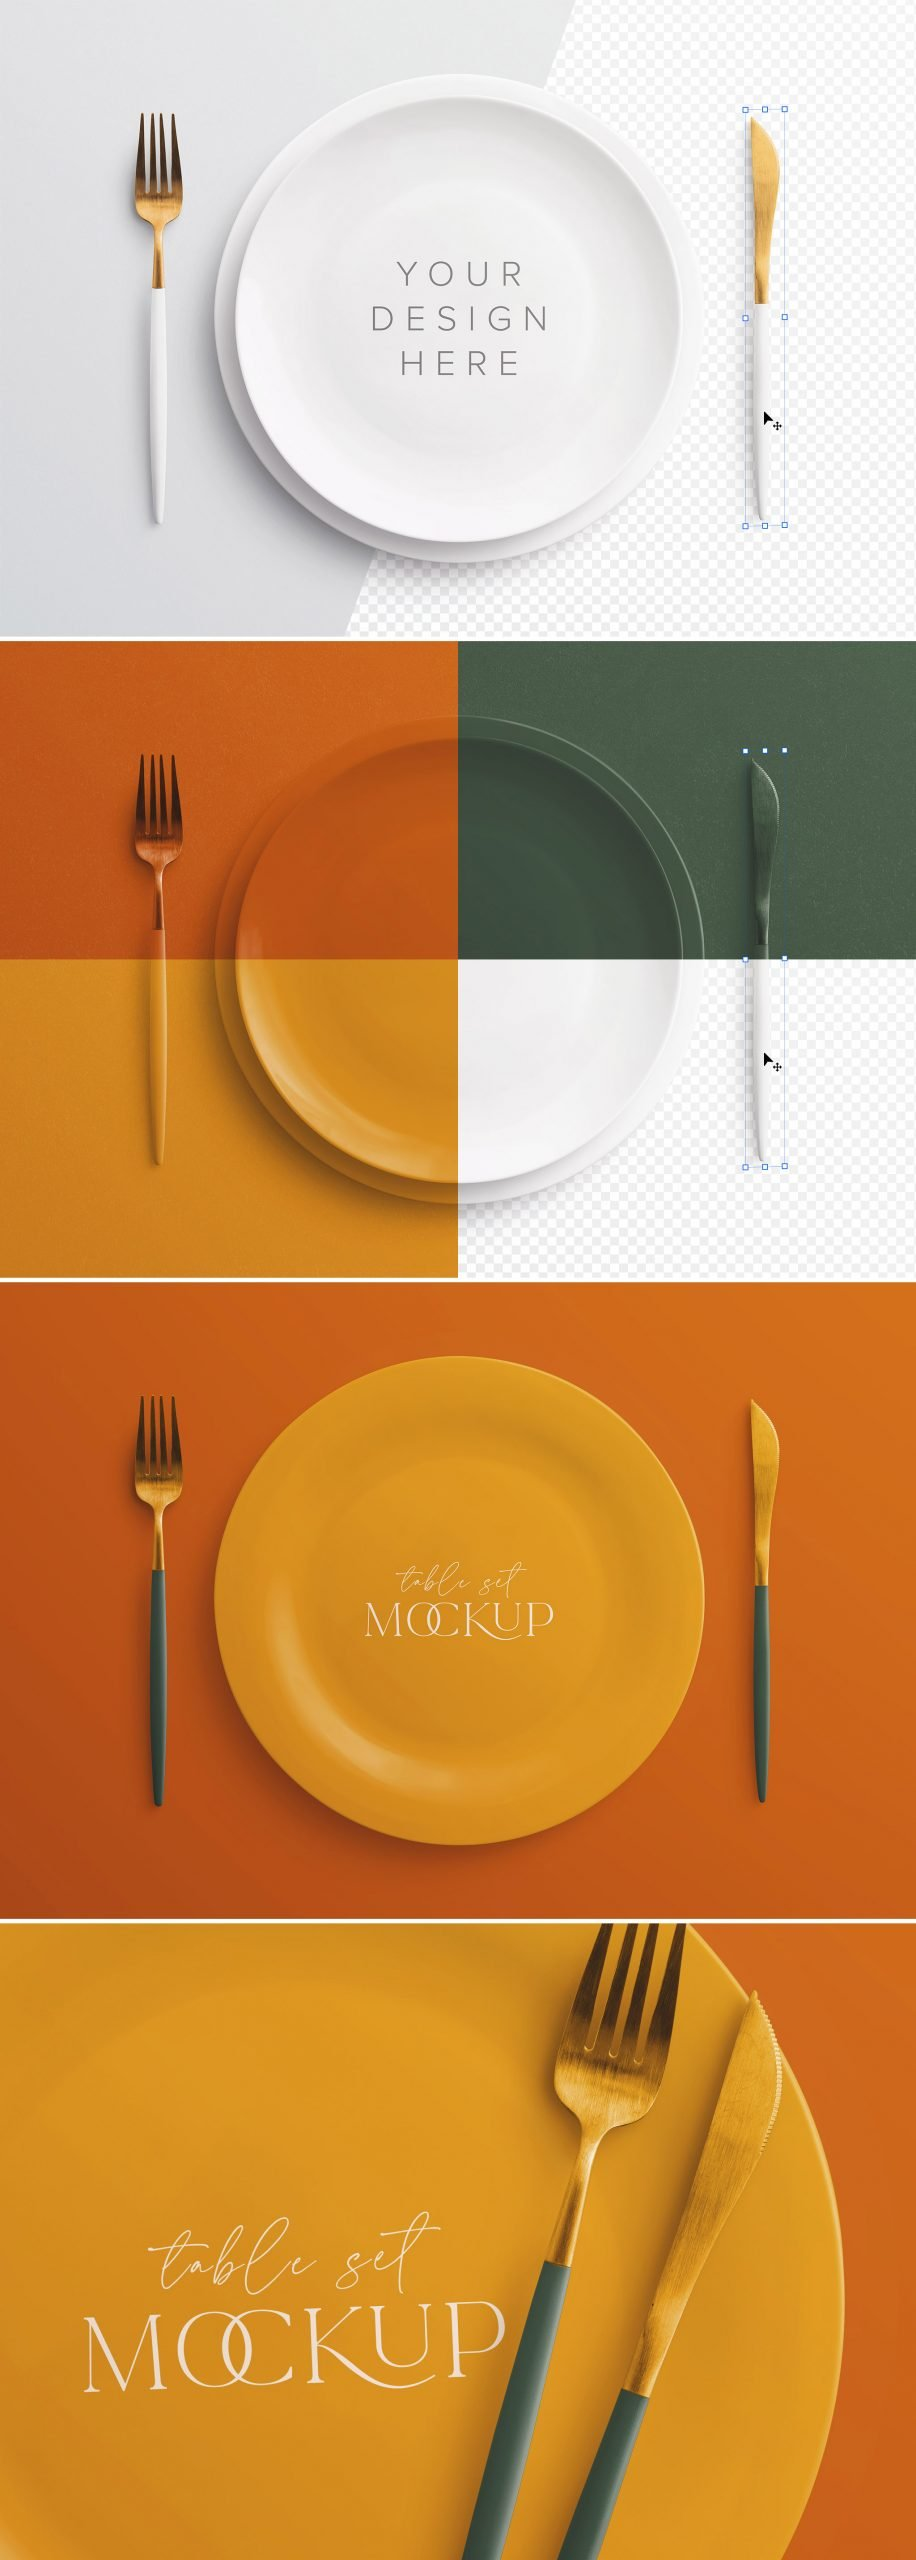 table set mockup plate and cutlery preview scaled